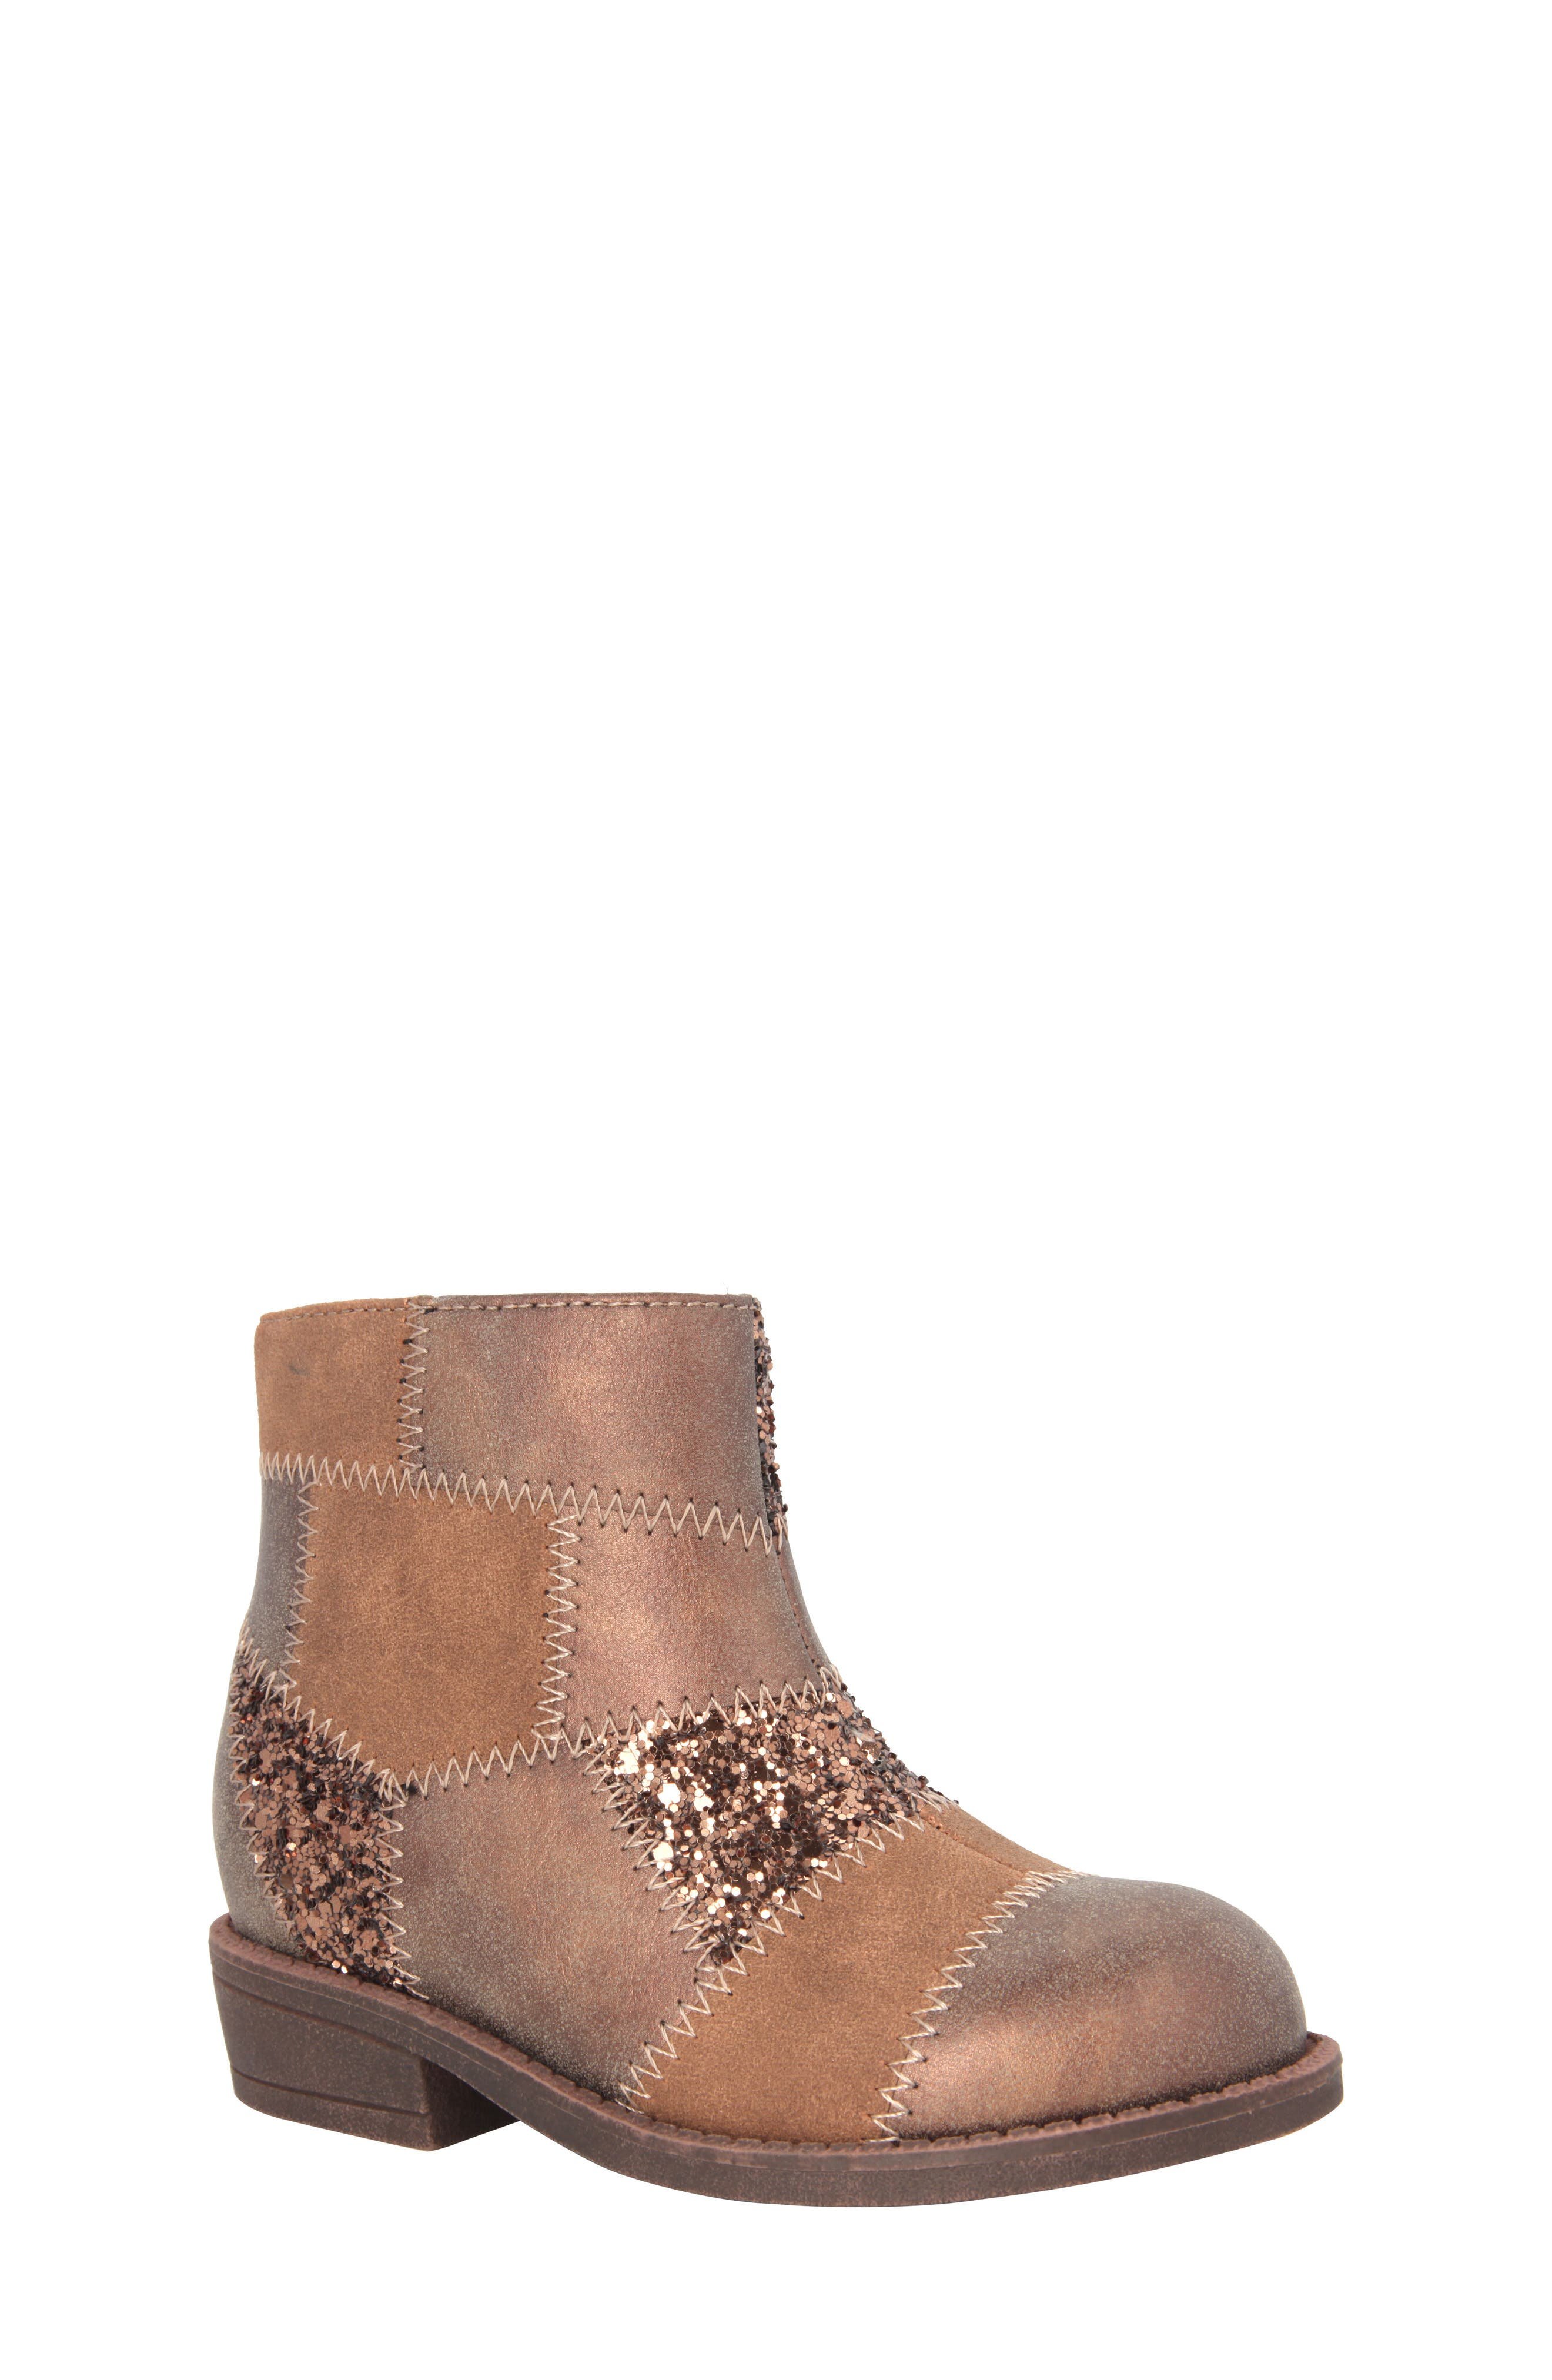 Alternate Image 1 Selected - Nina Ines Glittery Patchwork Bootie (Walker, Toddler, Little Kid & Big Kid)